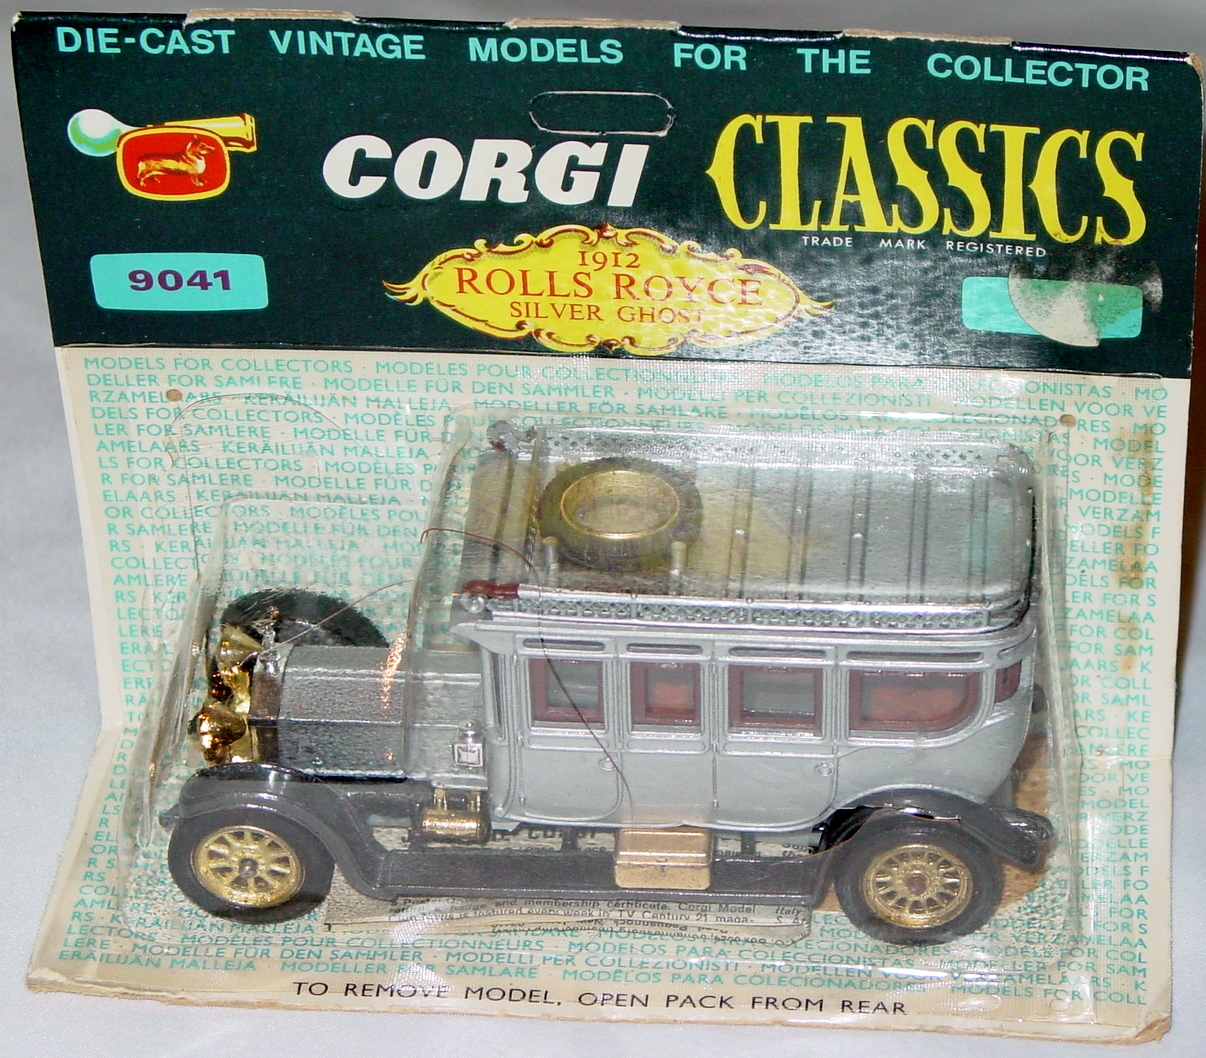 Corgi 9041 A - 1912 Rolls Silver Ghost in cut blister